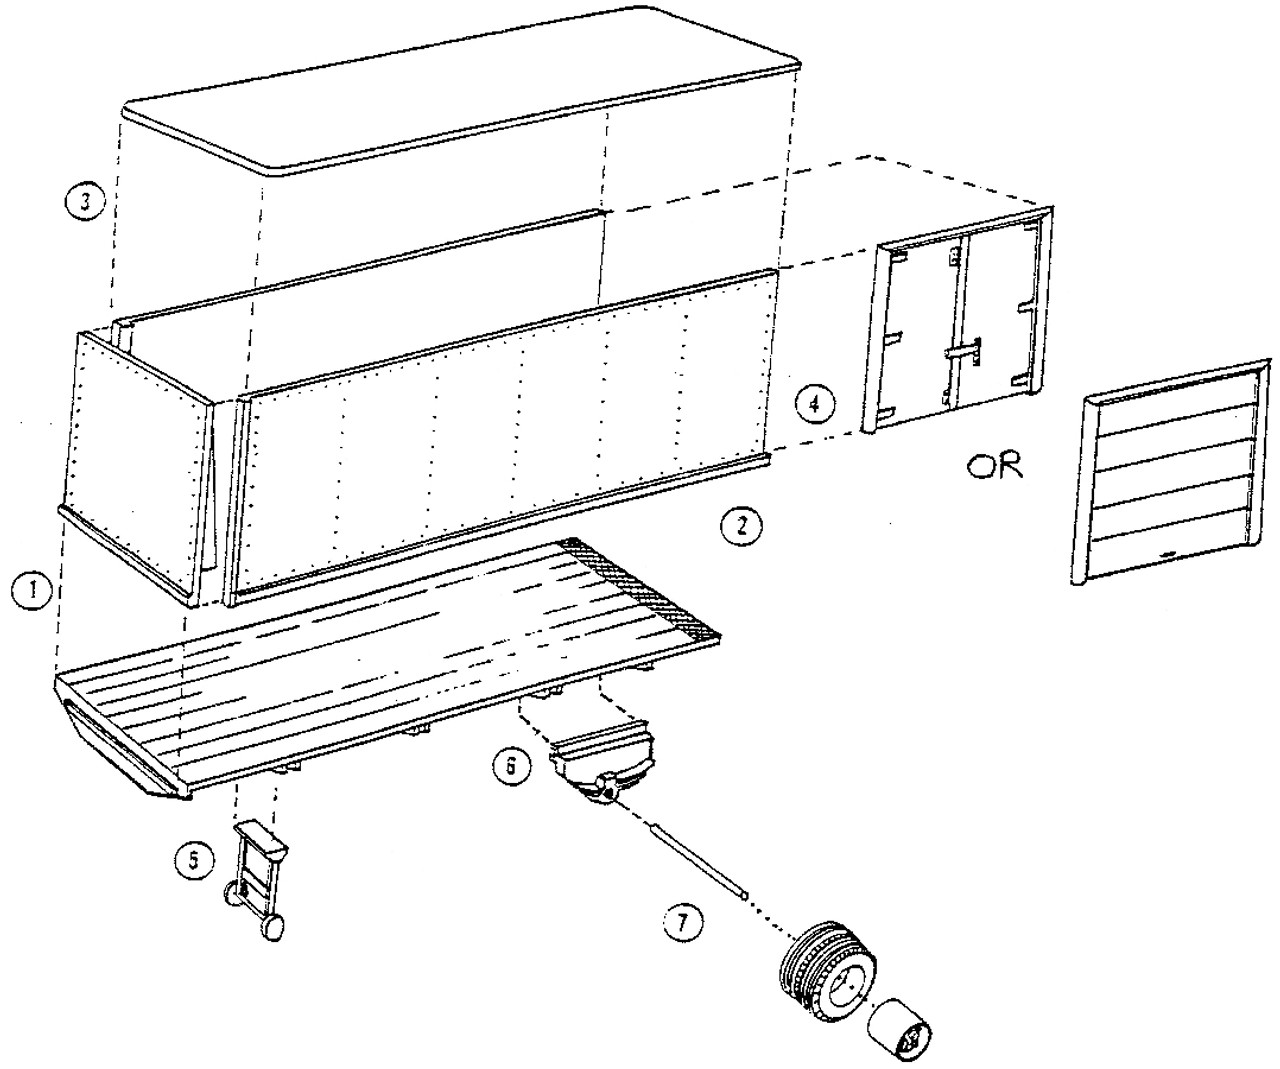 24 ft Riveted Sided Van Trailer Kit